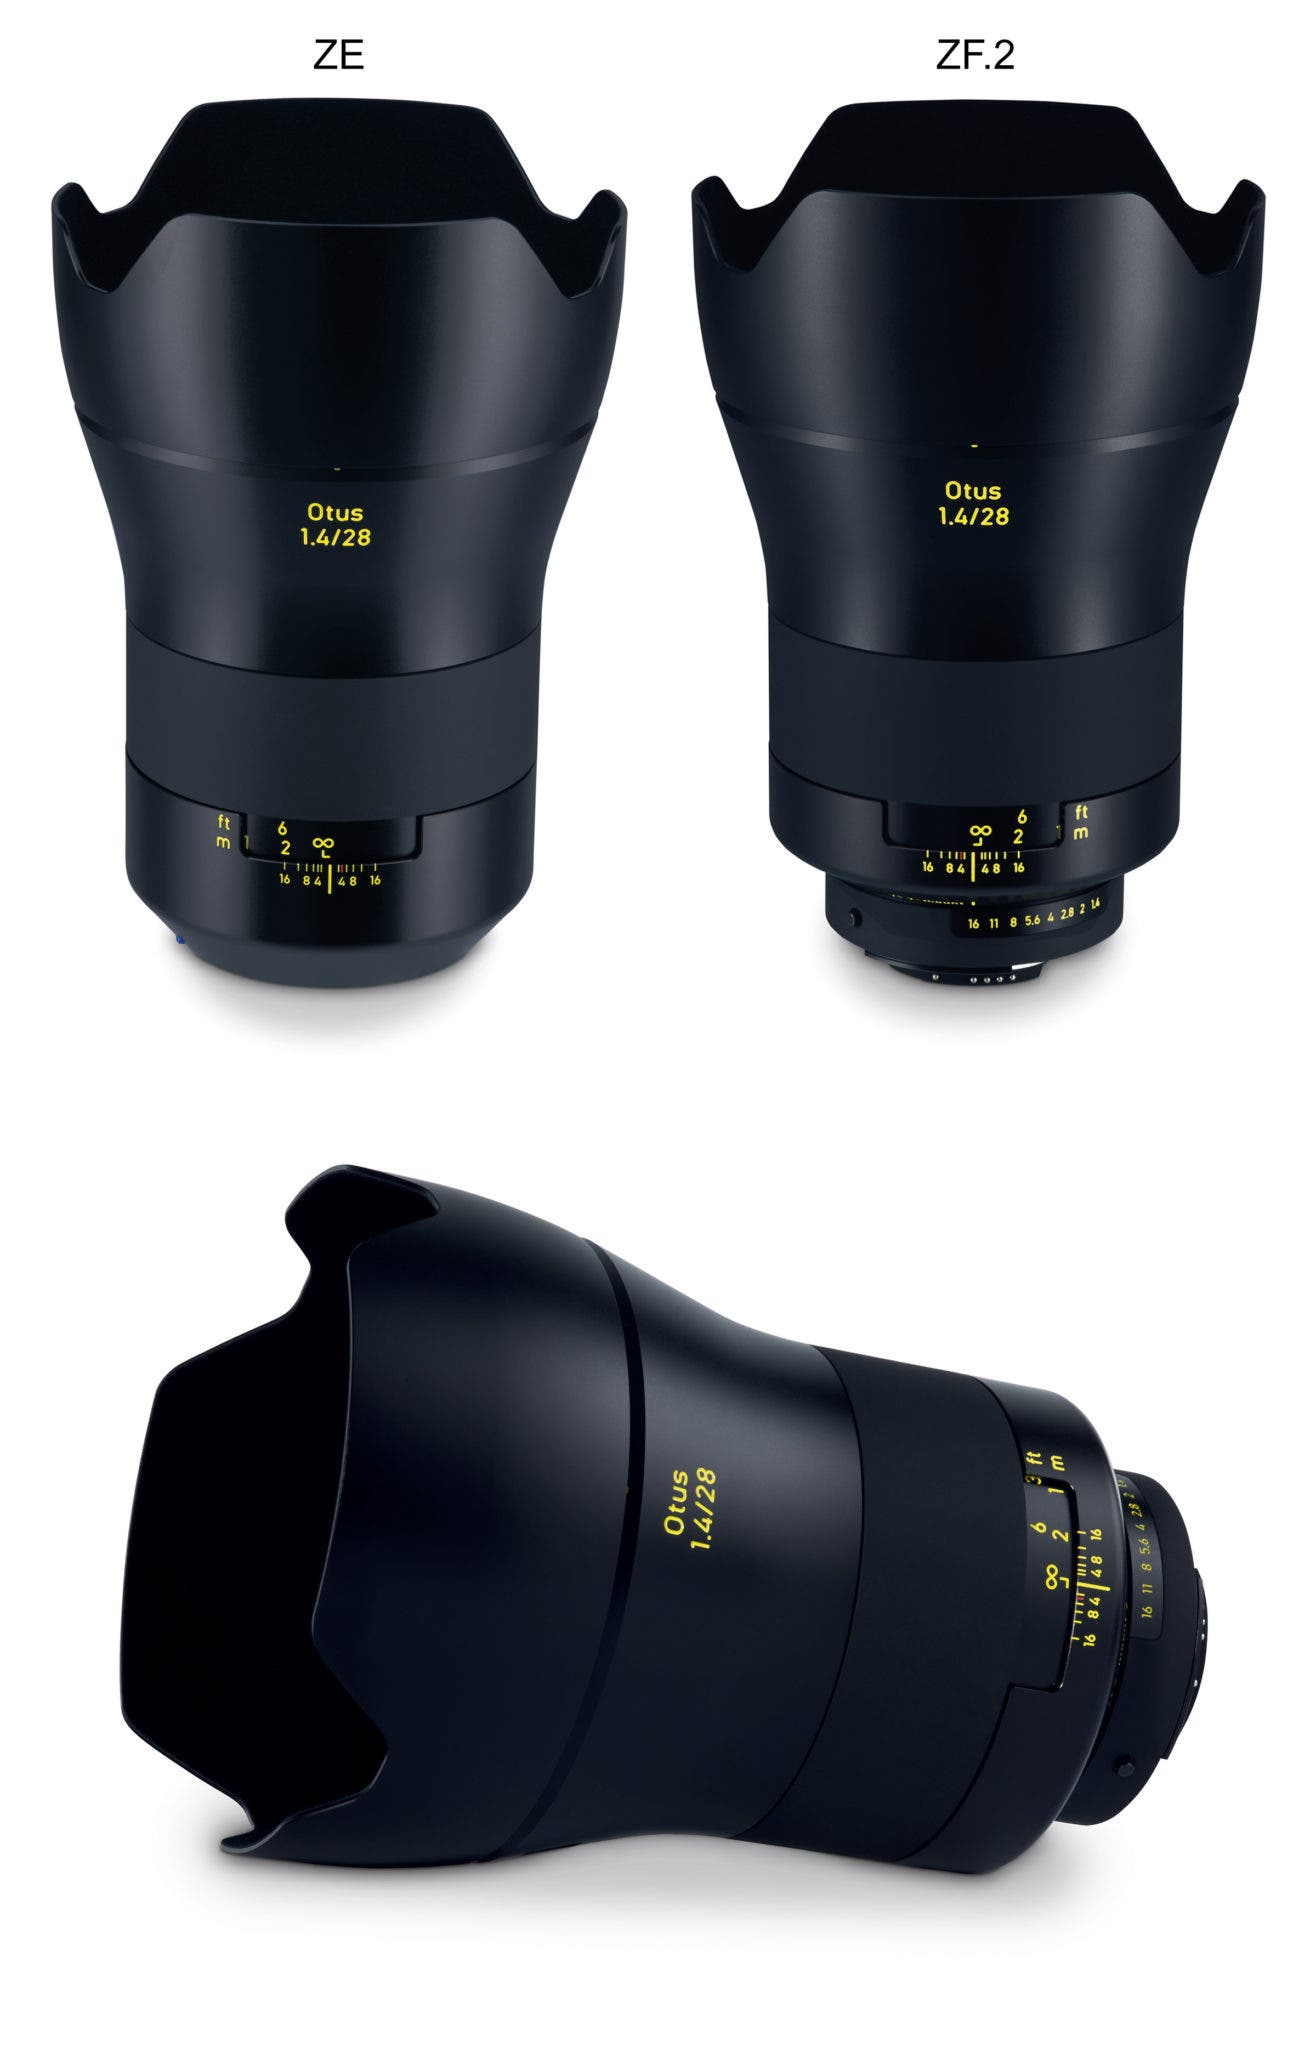 ZEISS Otus 1.4/28 for sophisticated fans of wide-angle lenses.